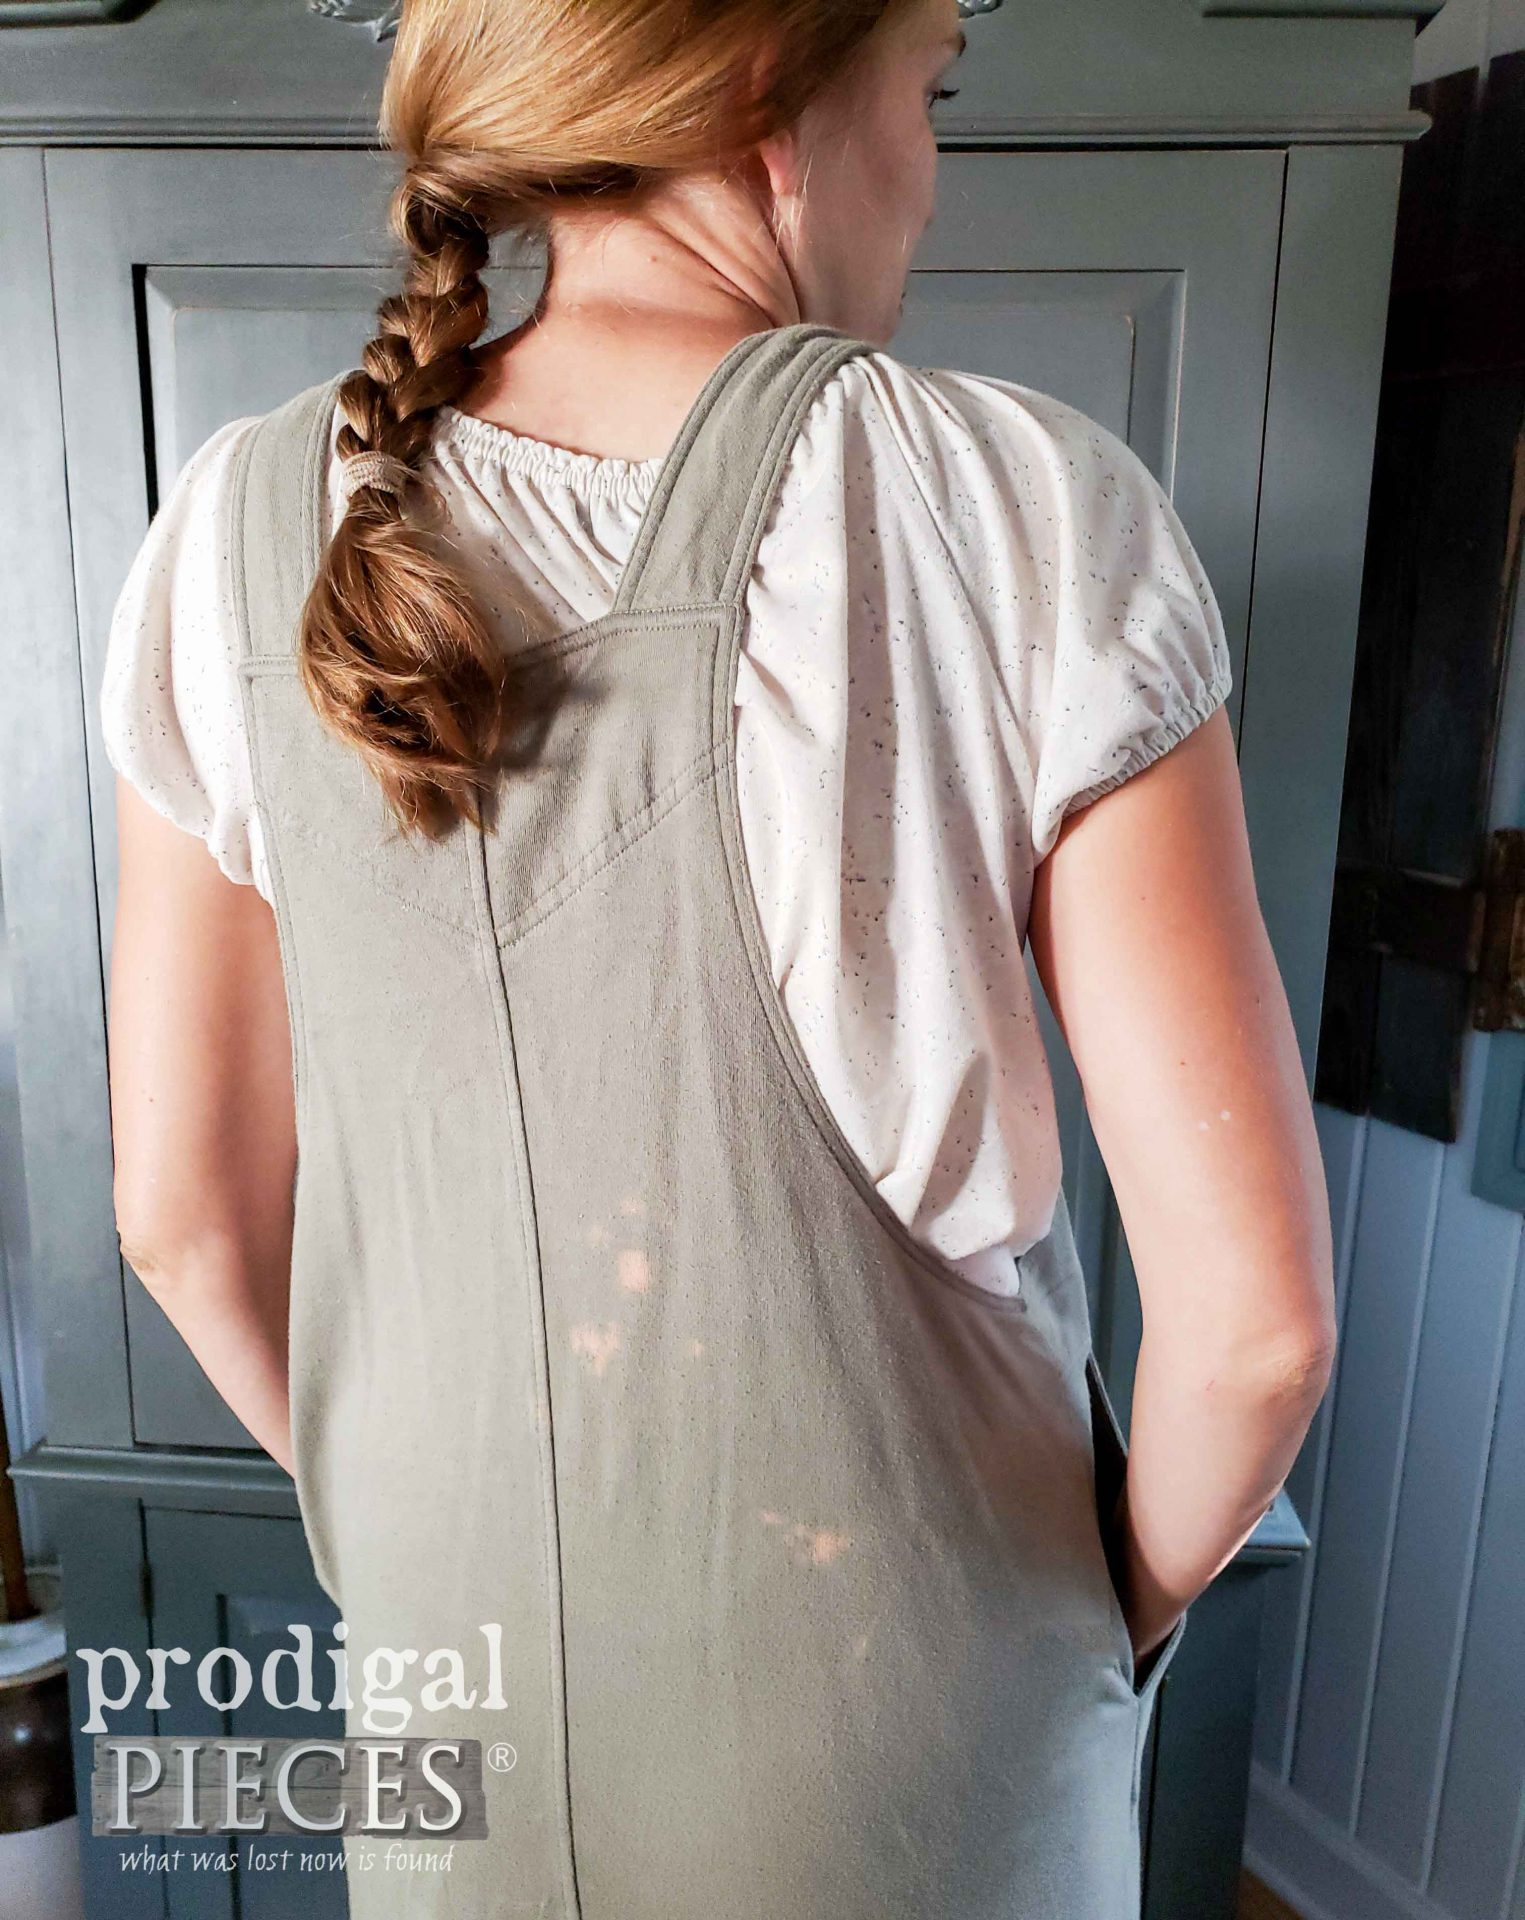 How to Fix Bleached Spots on Clothing and Textiles with Simple Steps by Larissa of Prodigal Pieces | prodigalpieces.com